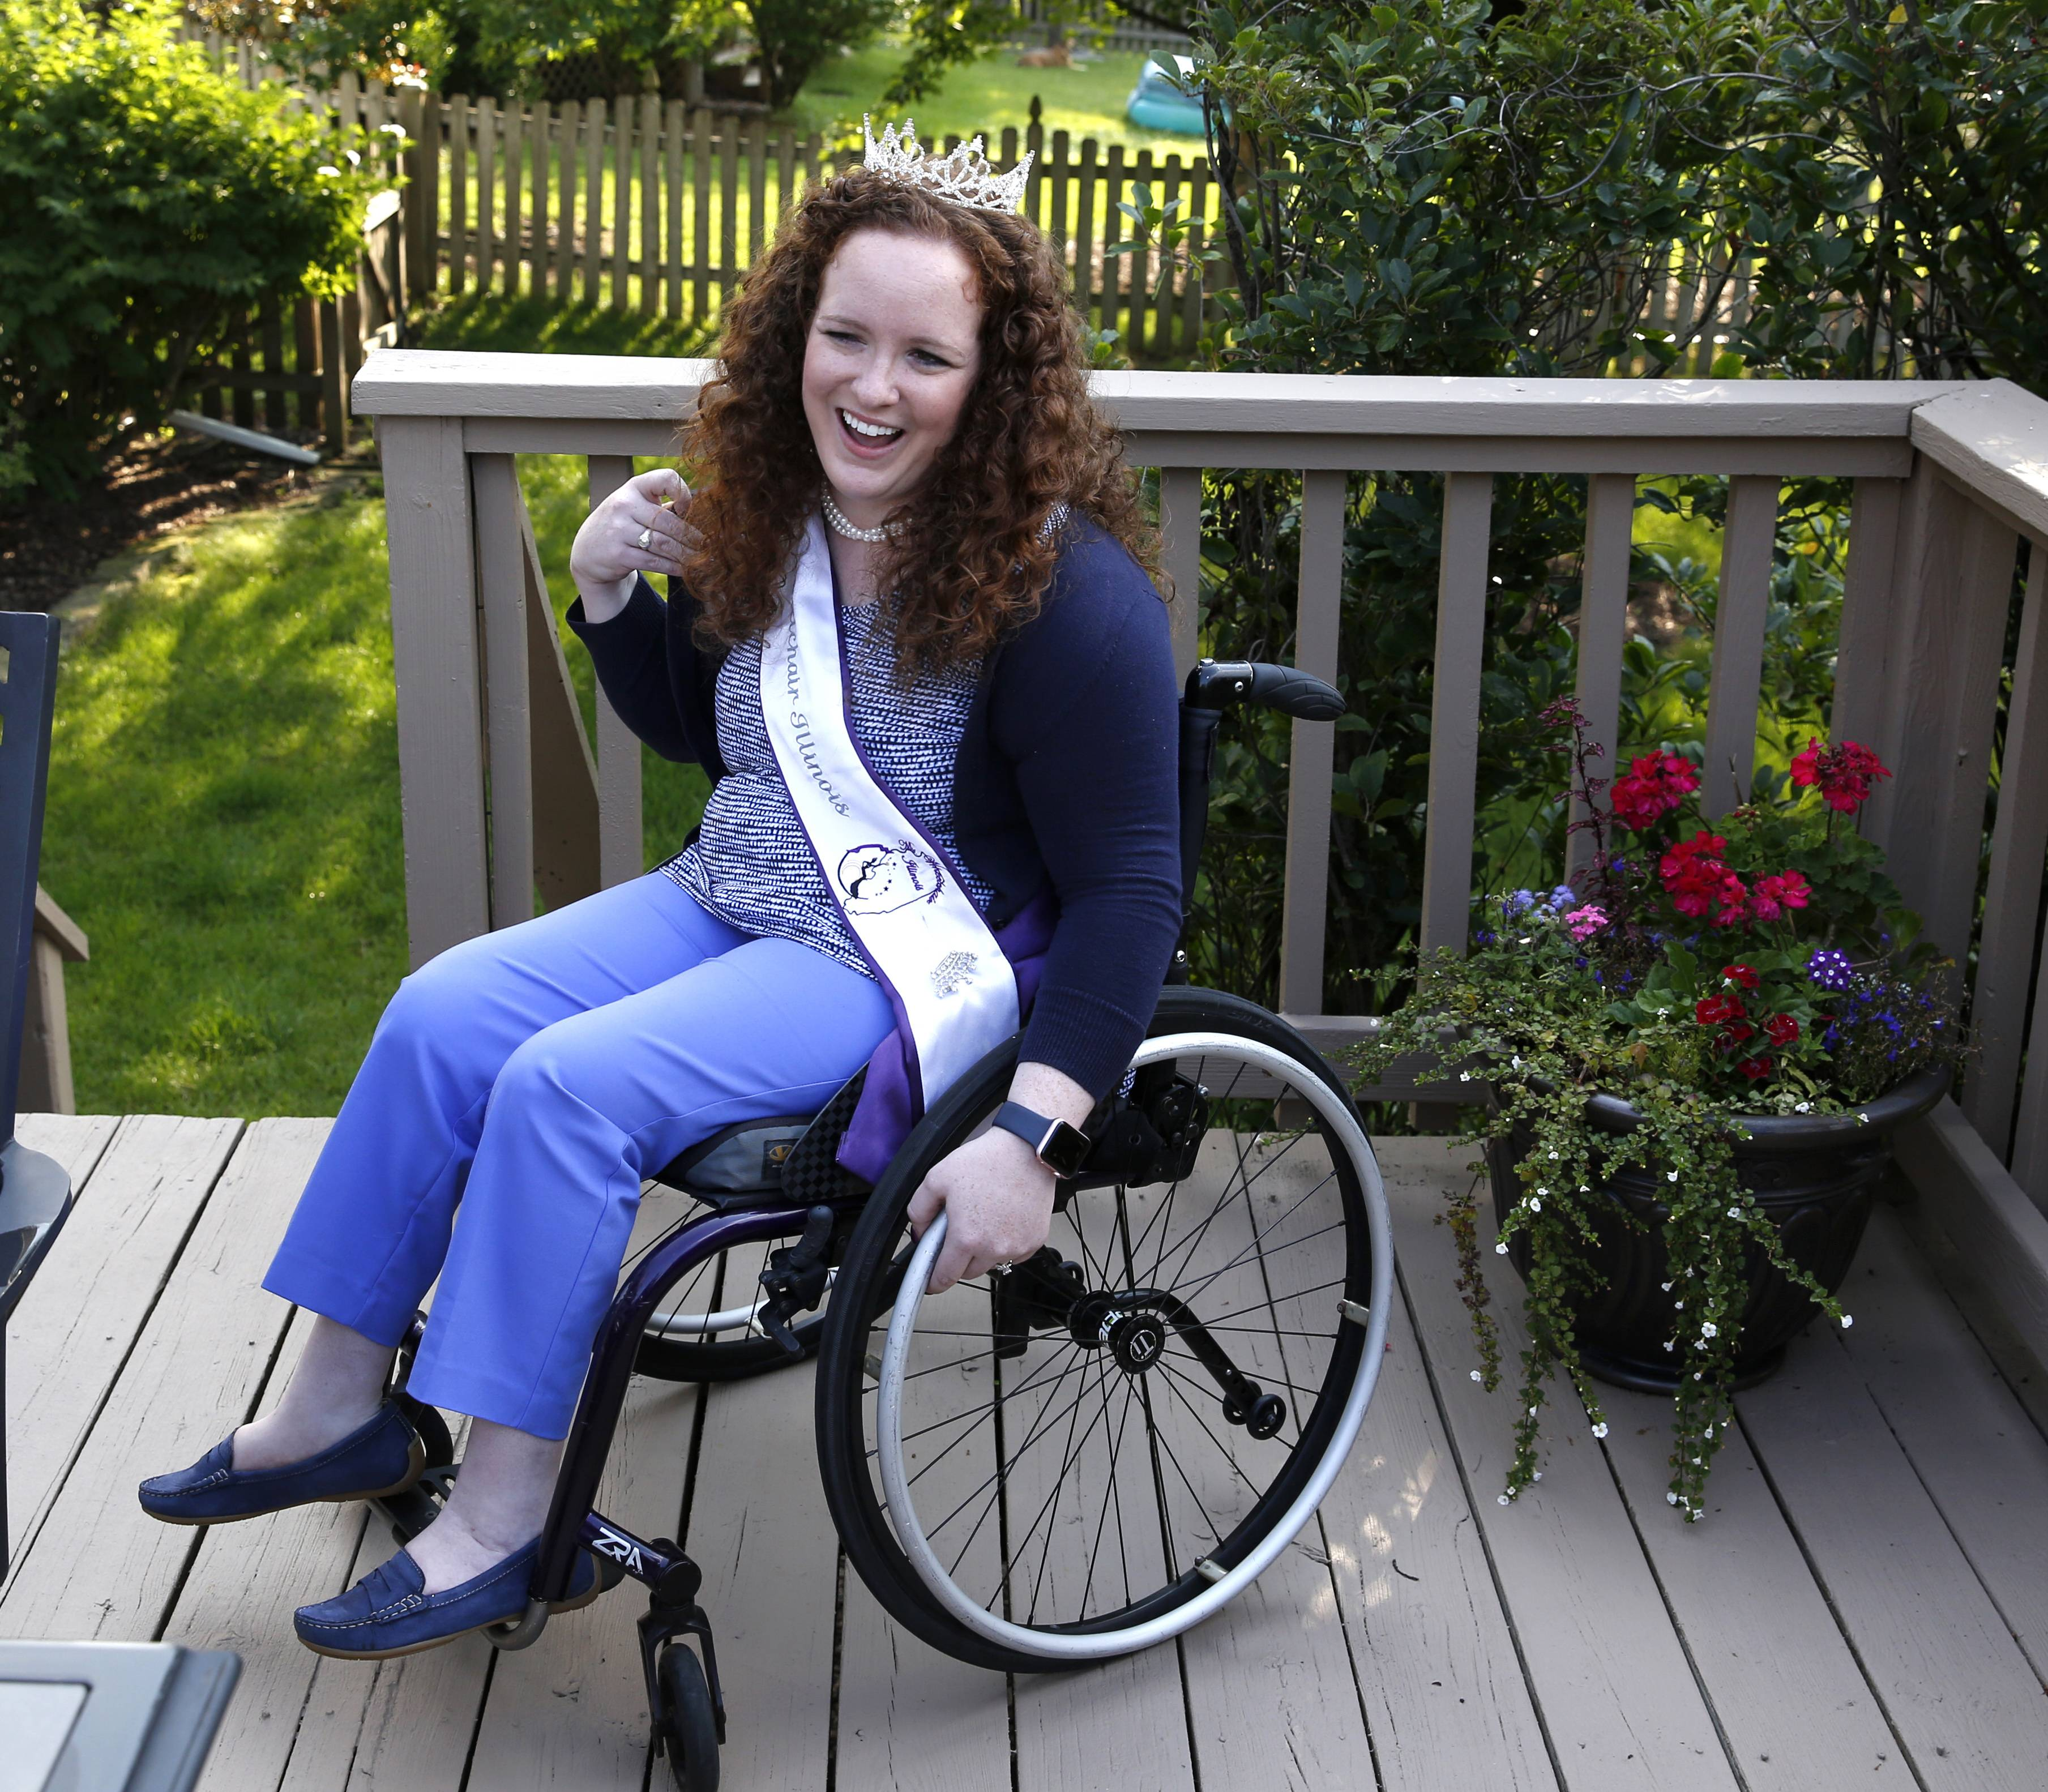 Ms. Wheelchair Illinois, from Naperville, vies for broader advocacy role